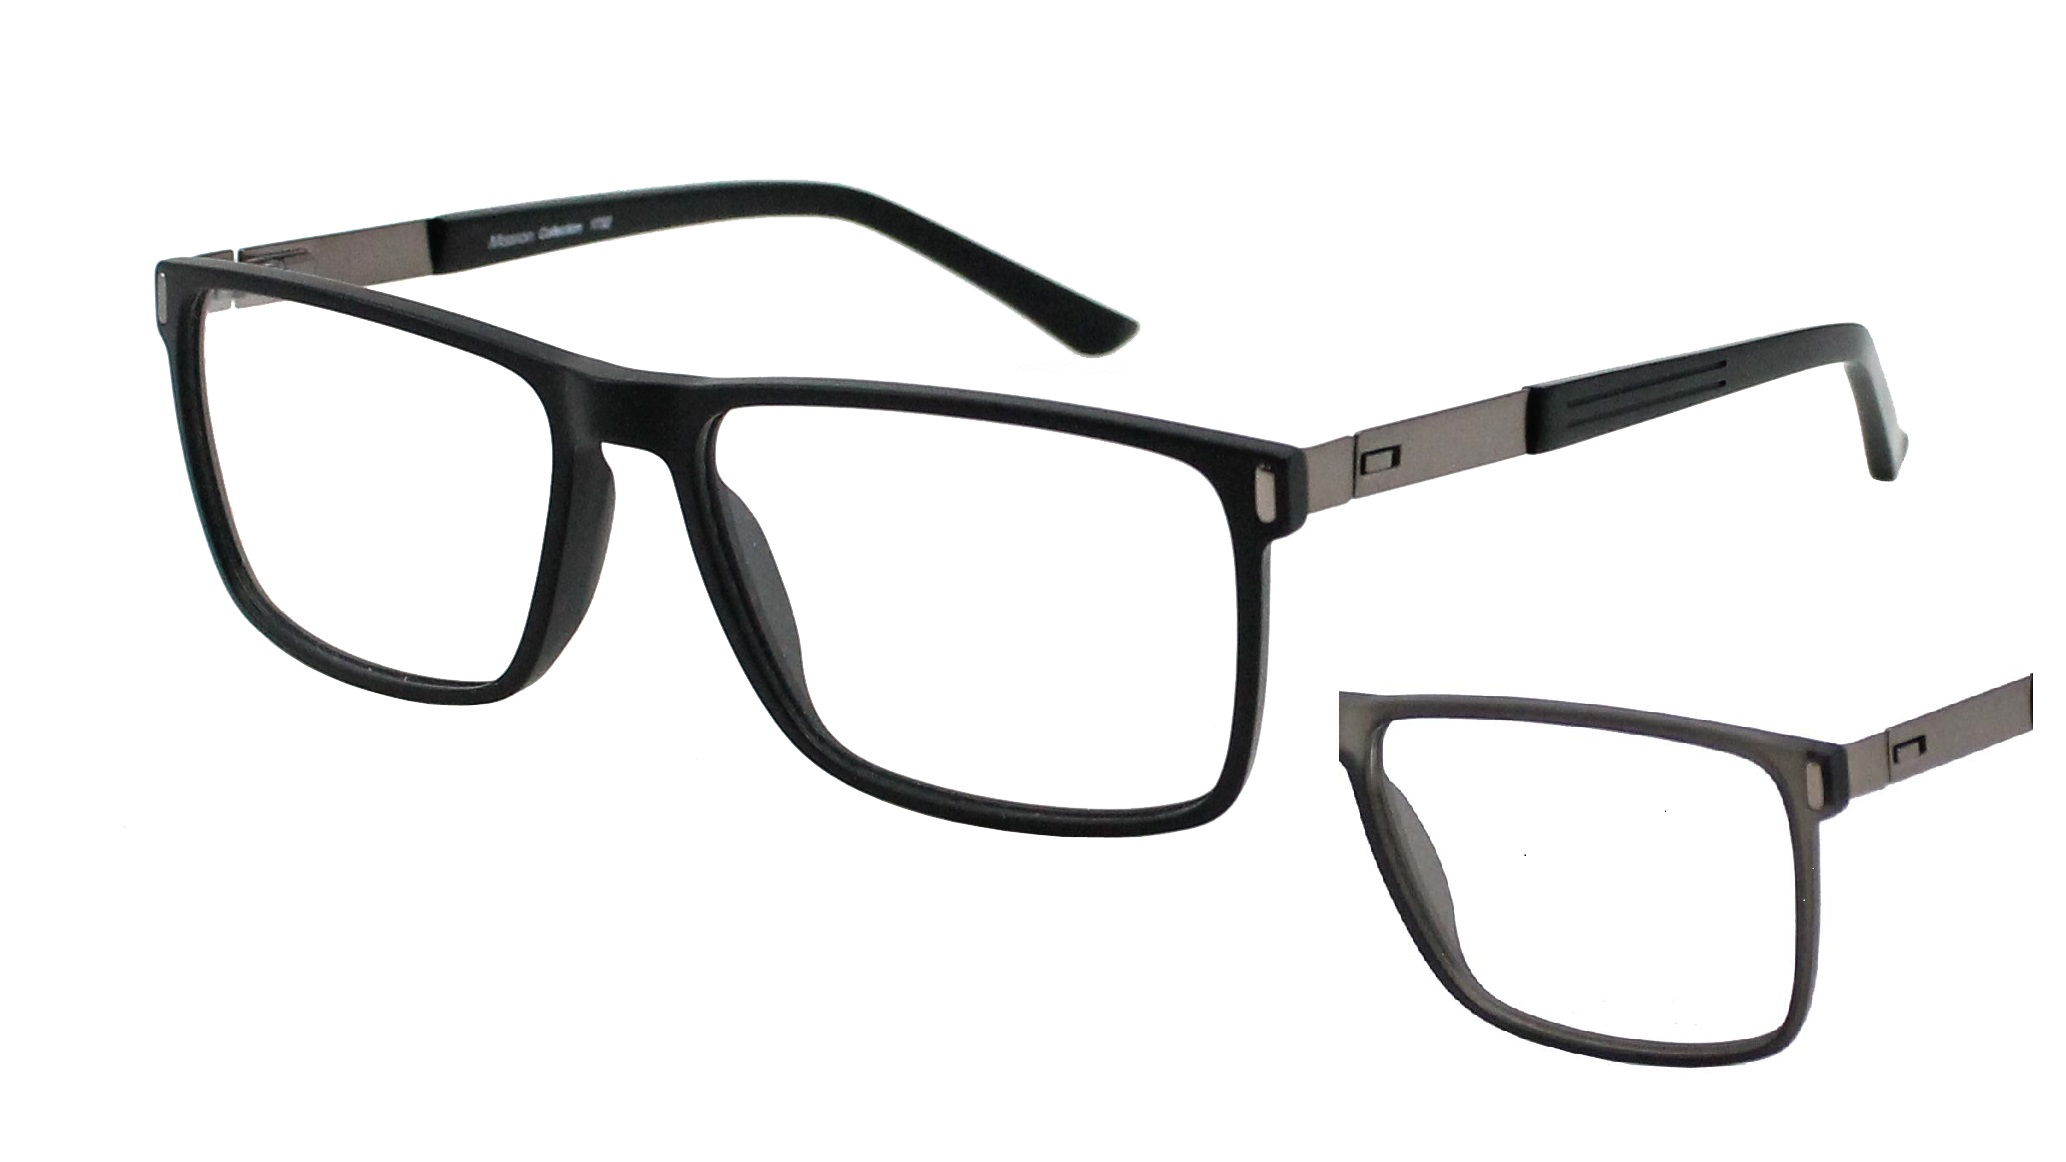 Qube Glasses Frames : Mission Collection 1732 - Mirage Eyewear